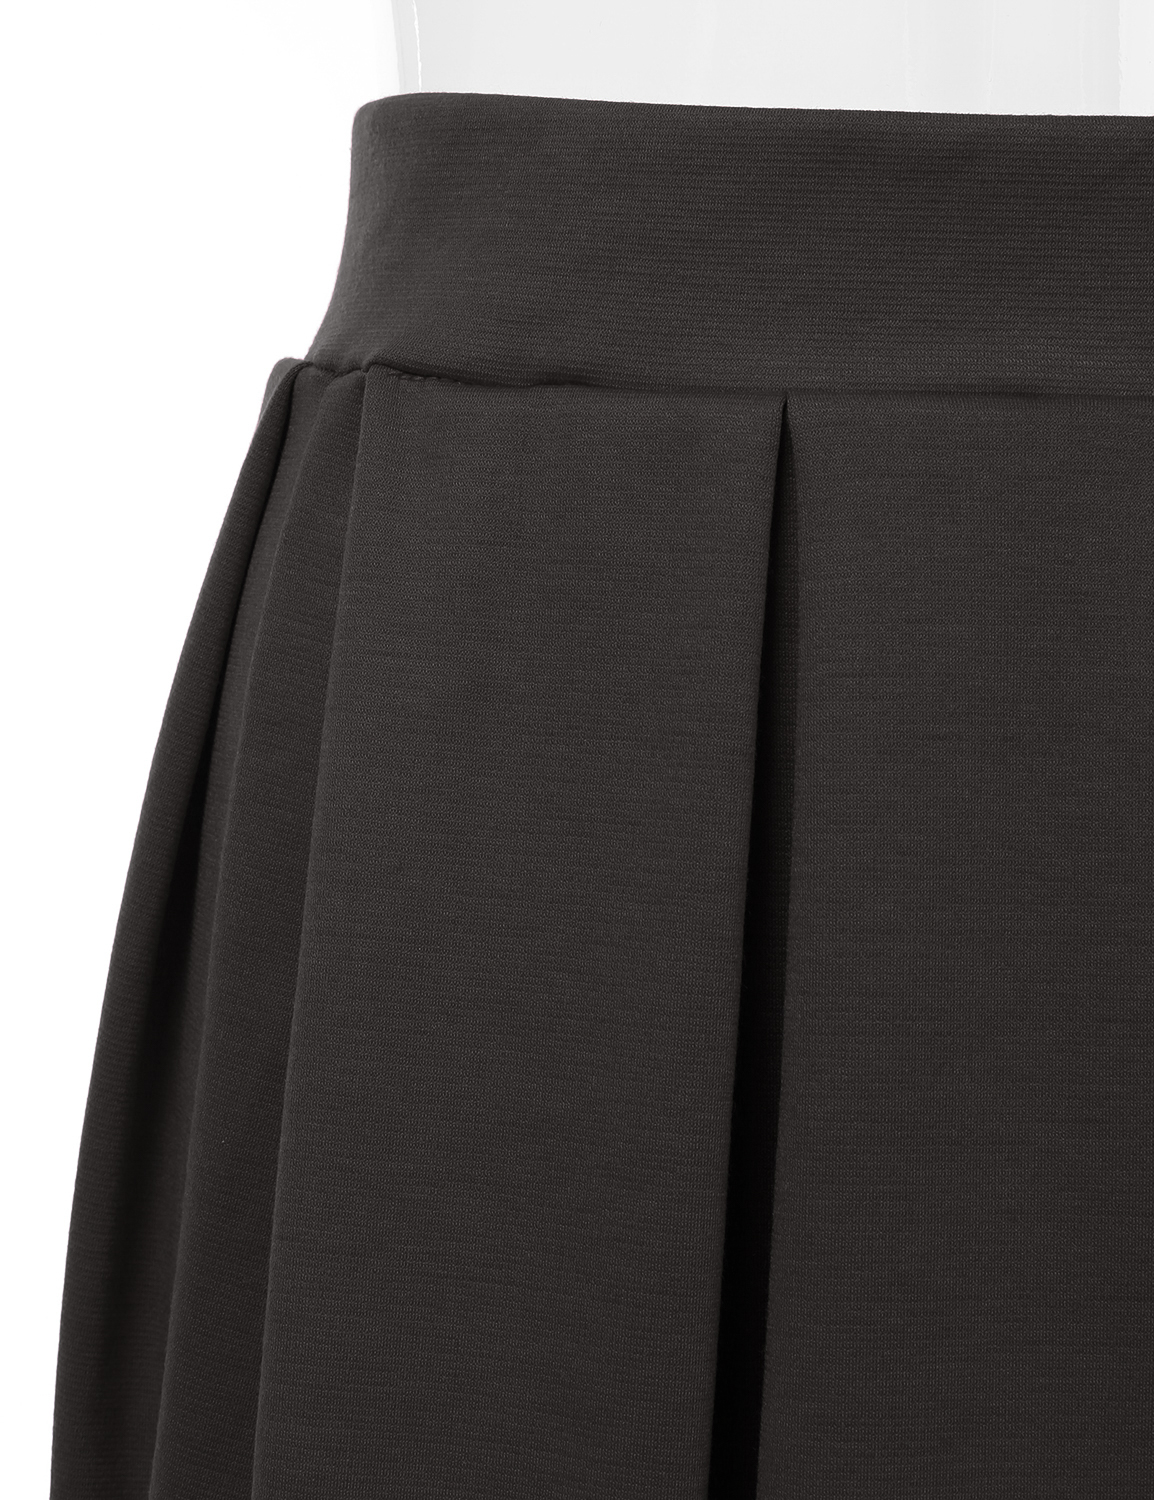 Doublju-Elastic-Waist-Flare-Pleated-Skater-Midi-Skirt-for-Women-with-Plus-Size thumbnail 37